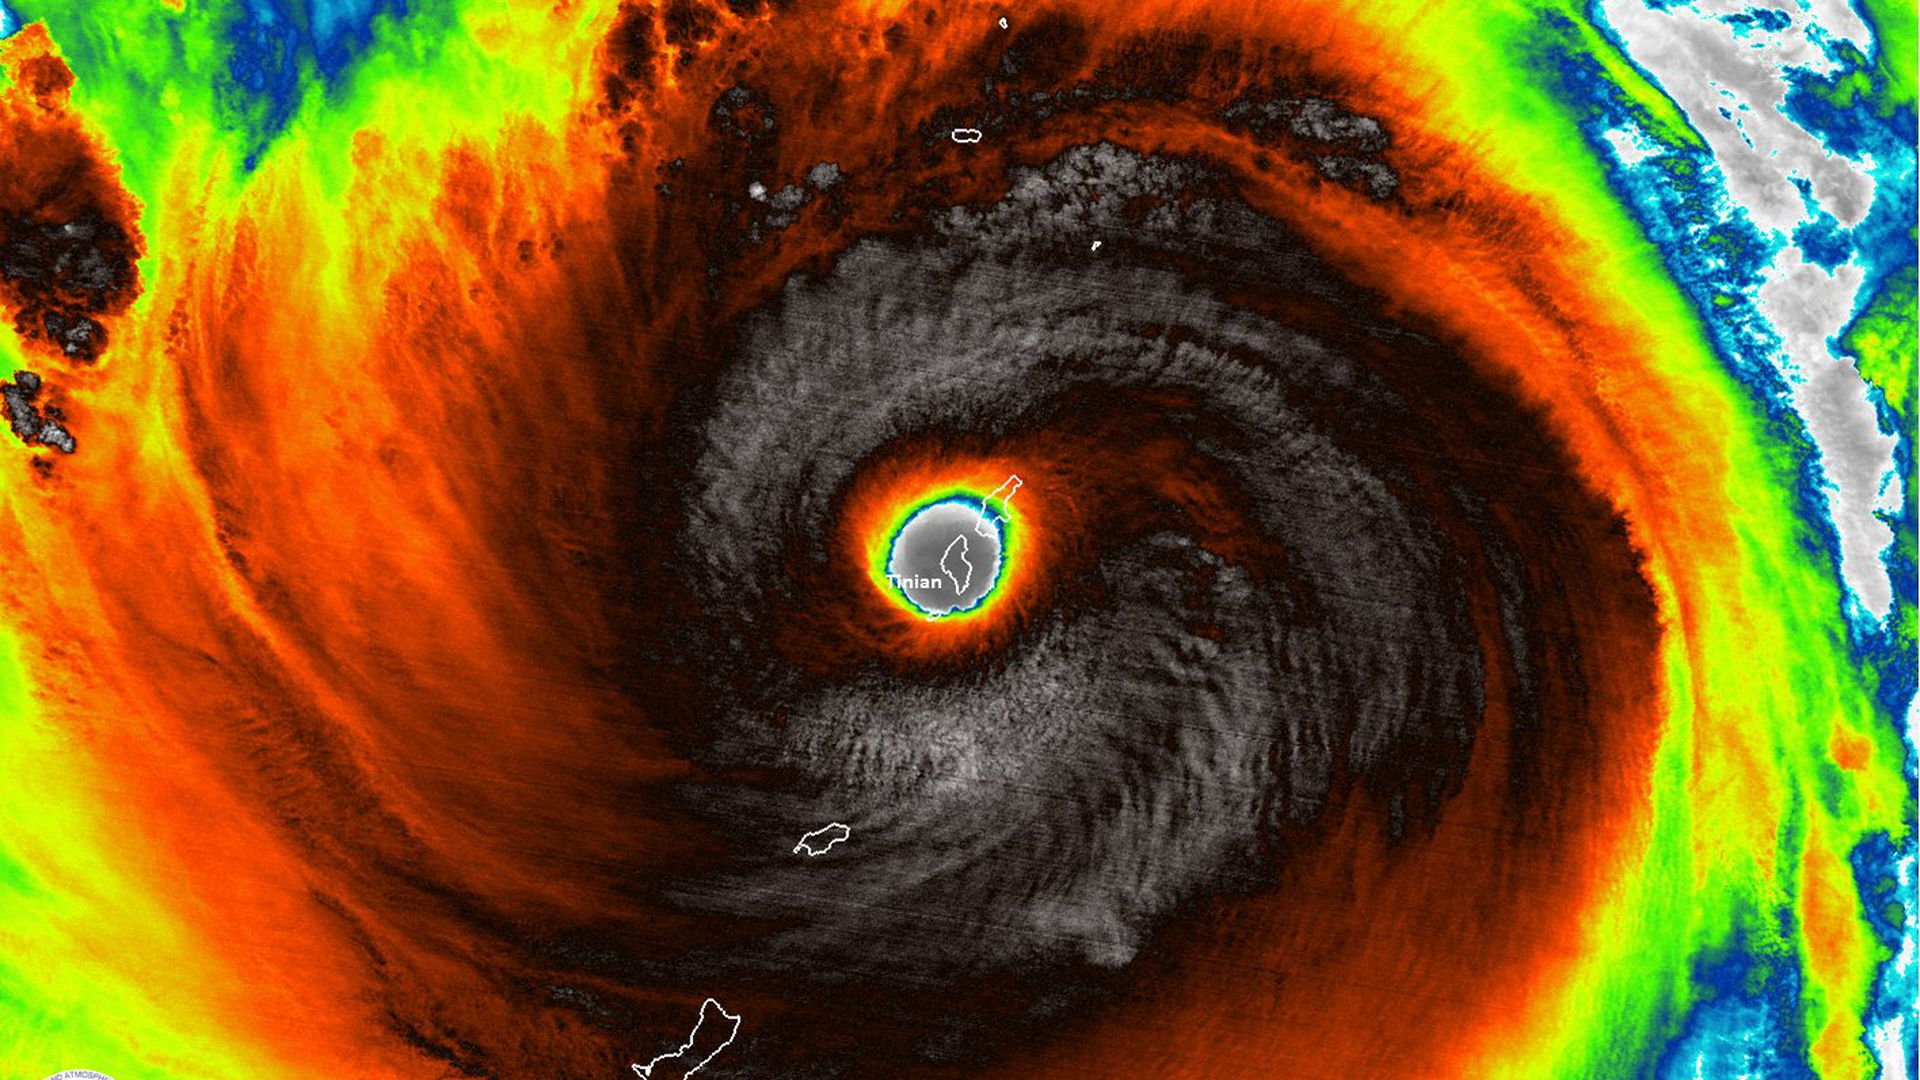 Super Typhoon Yutu swallows the island of Tinian on Oct. 24, 2018 as a strong Category 5 storm.